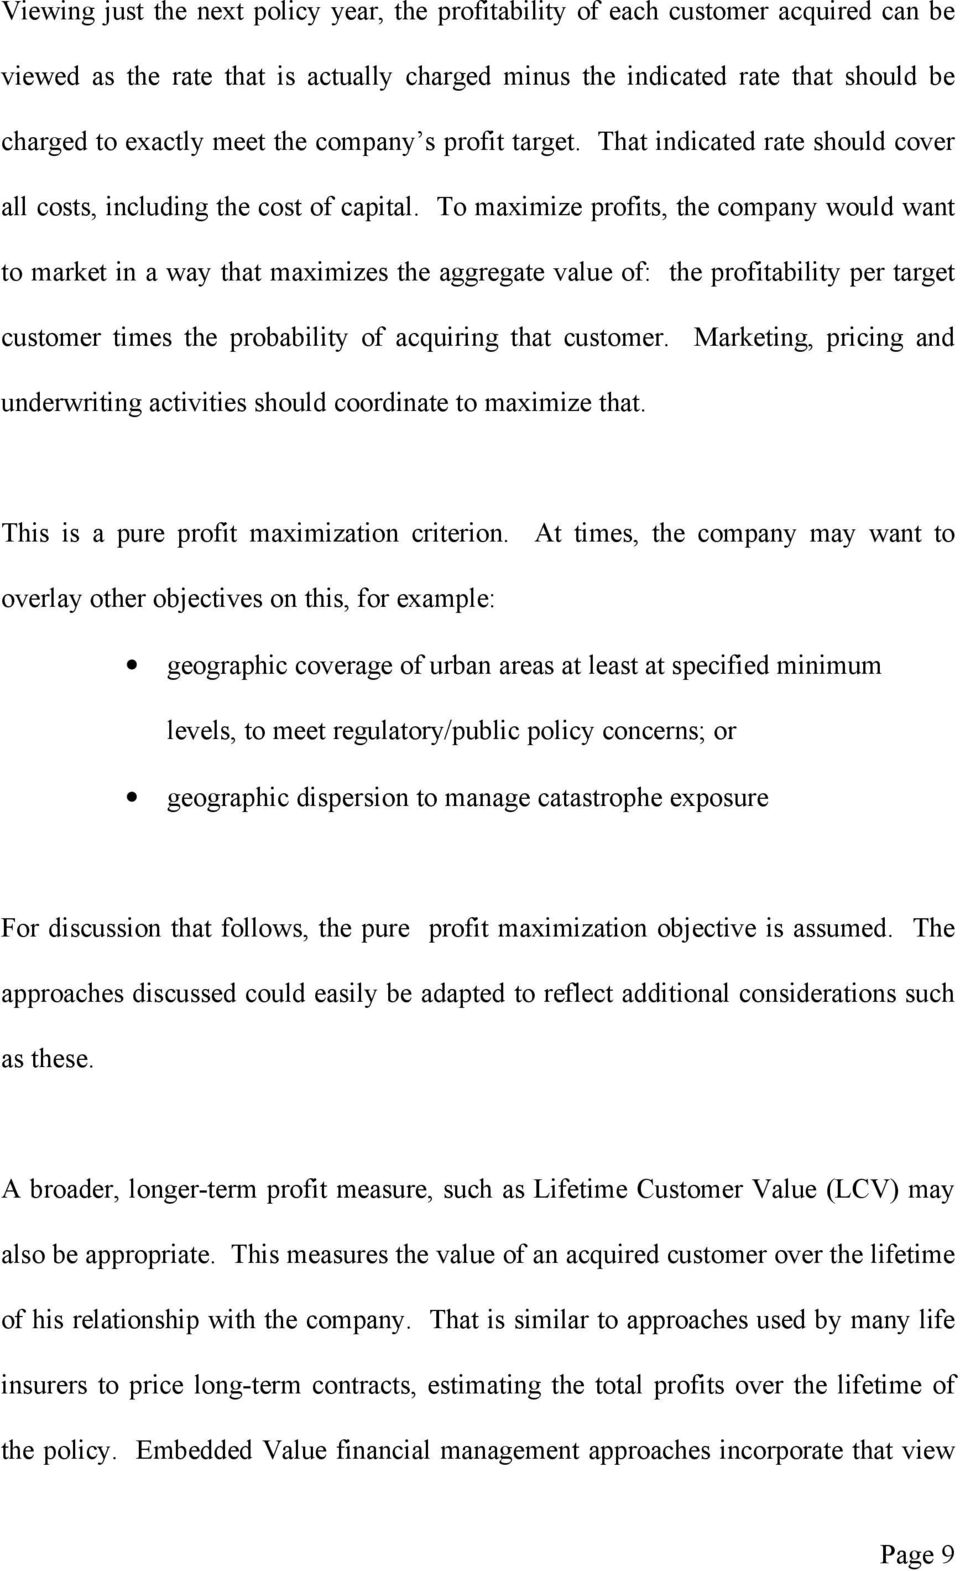 To maximize profits, the company would want to market in a way that maximizes the aggregate value of: the profitability per target customer times the probability of acquiring that customer.